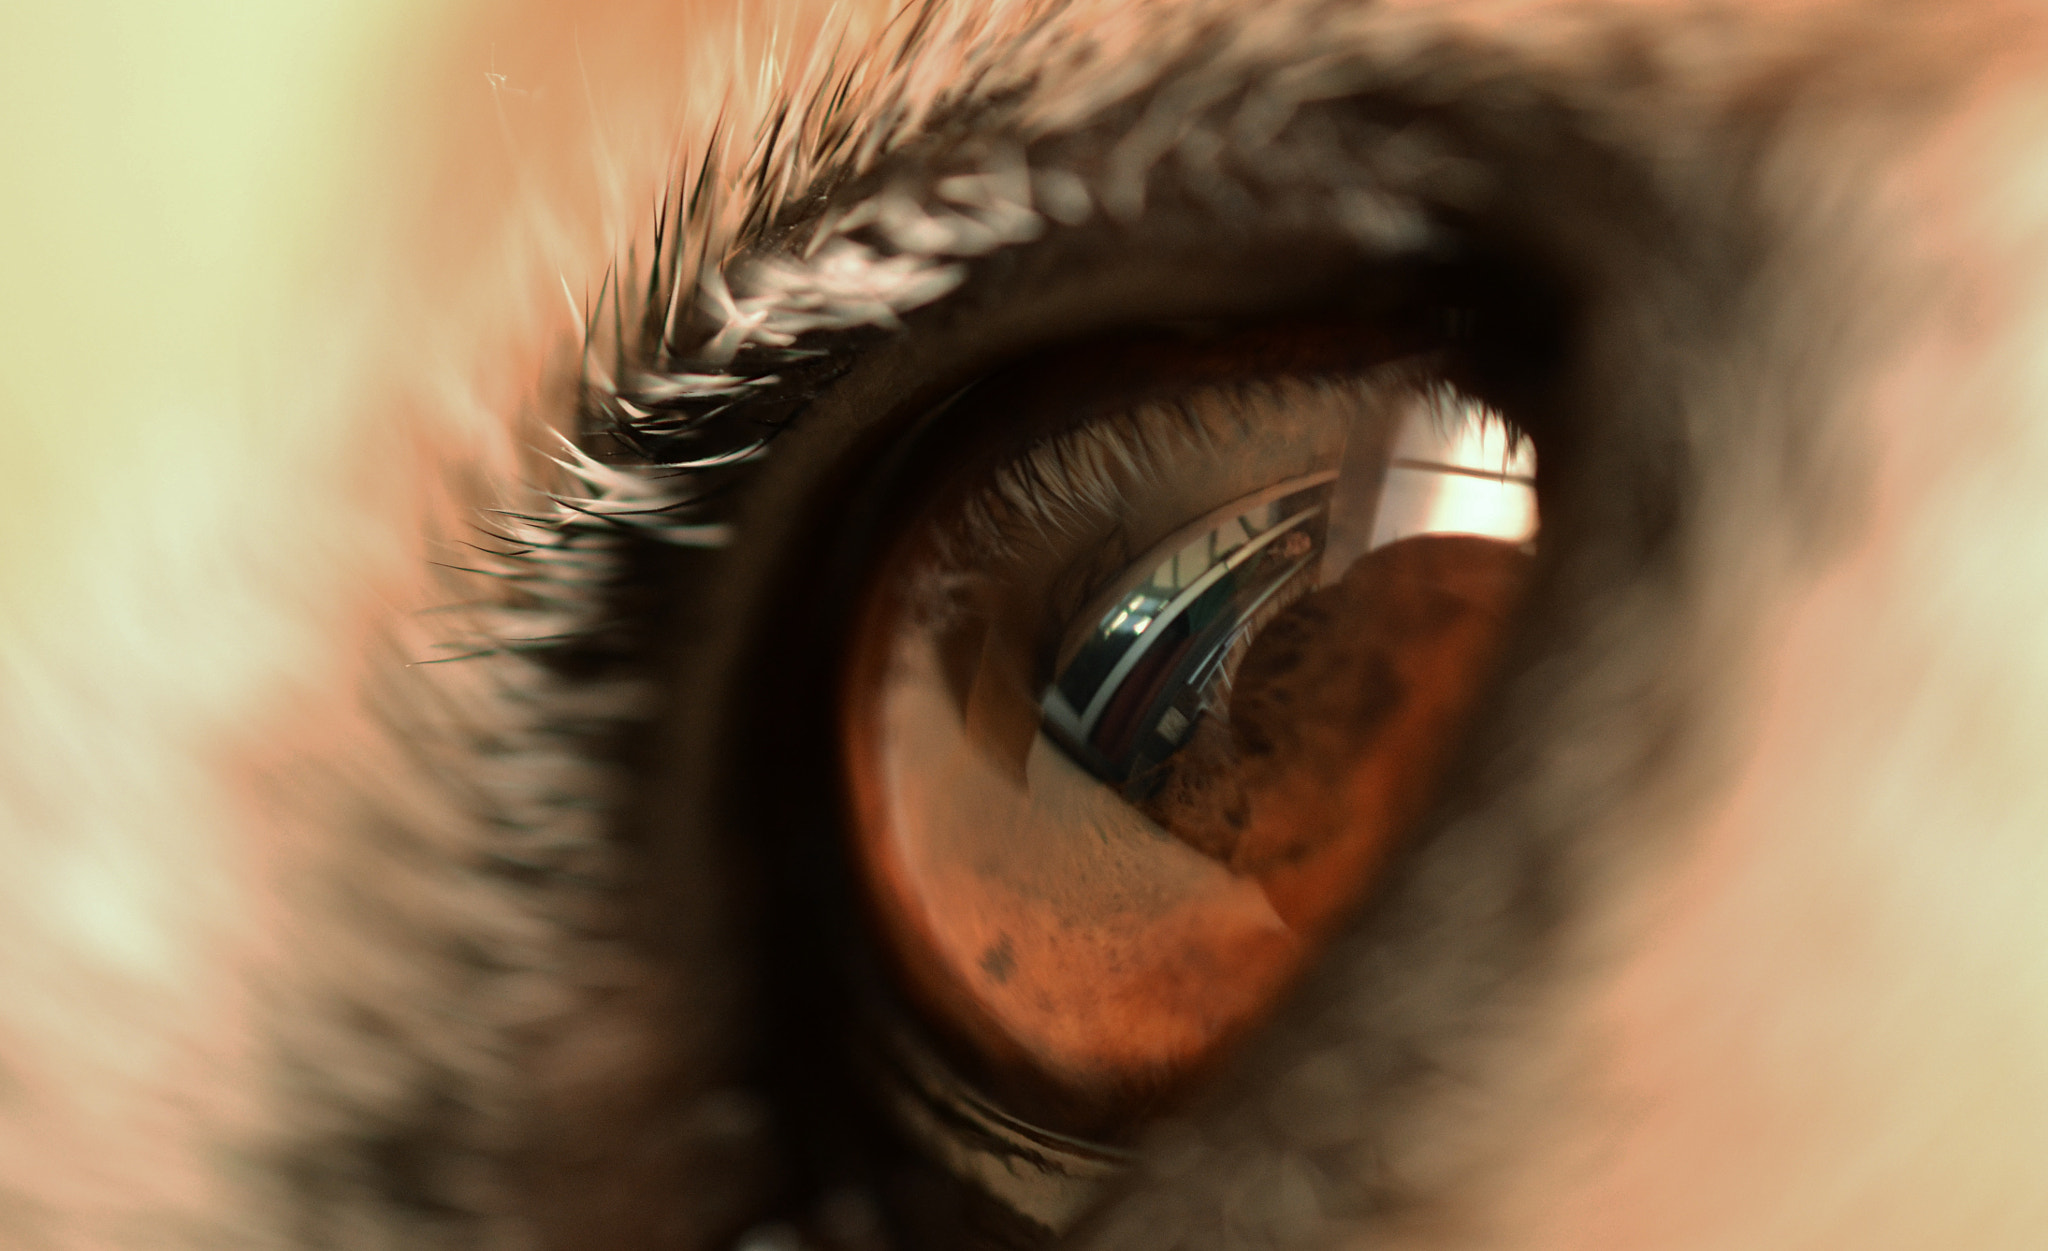 Photograph through your eyes by emily prouse on 500px